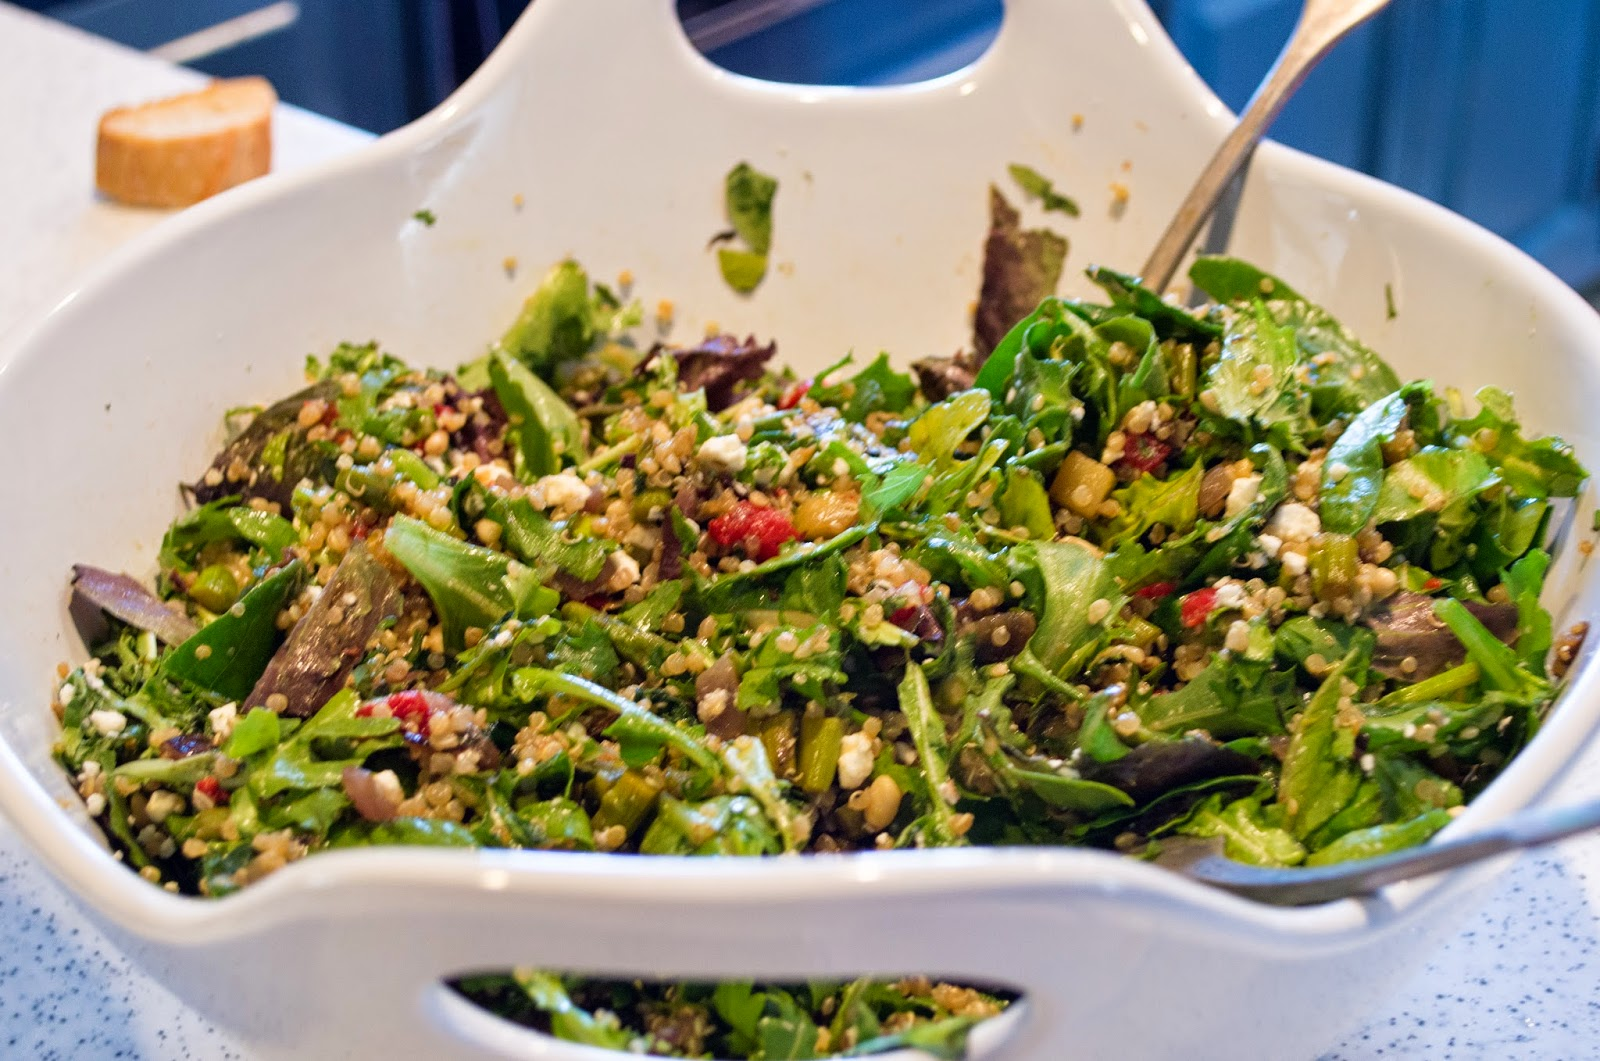 Quinoa salad with feta and pine nuts